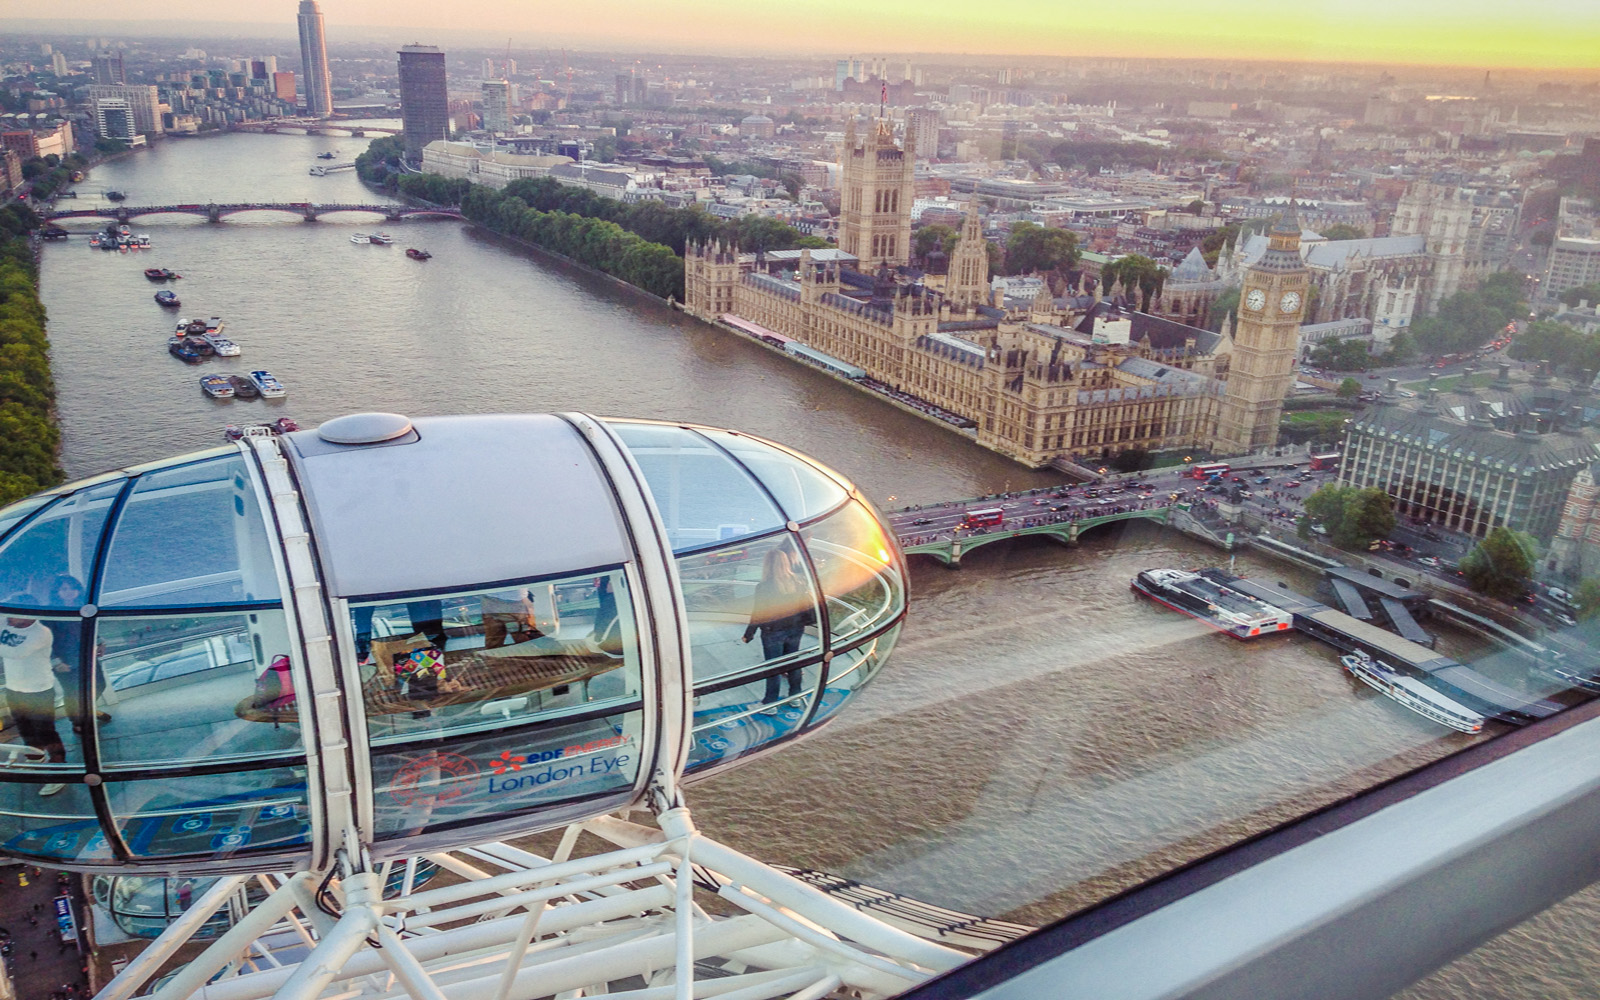 Parliament houses from london eye